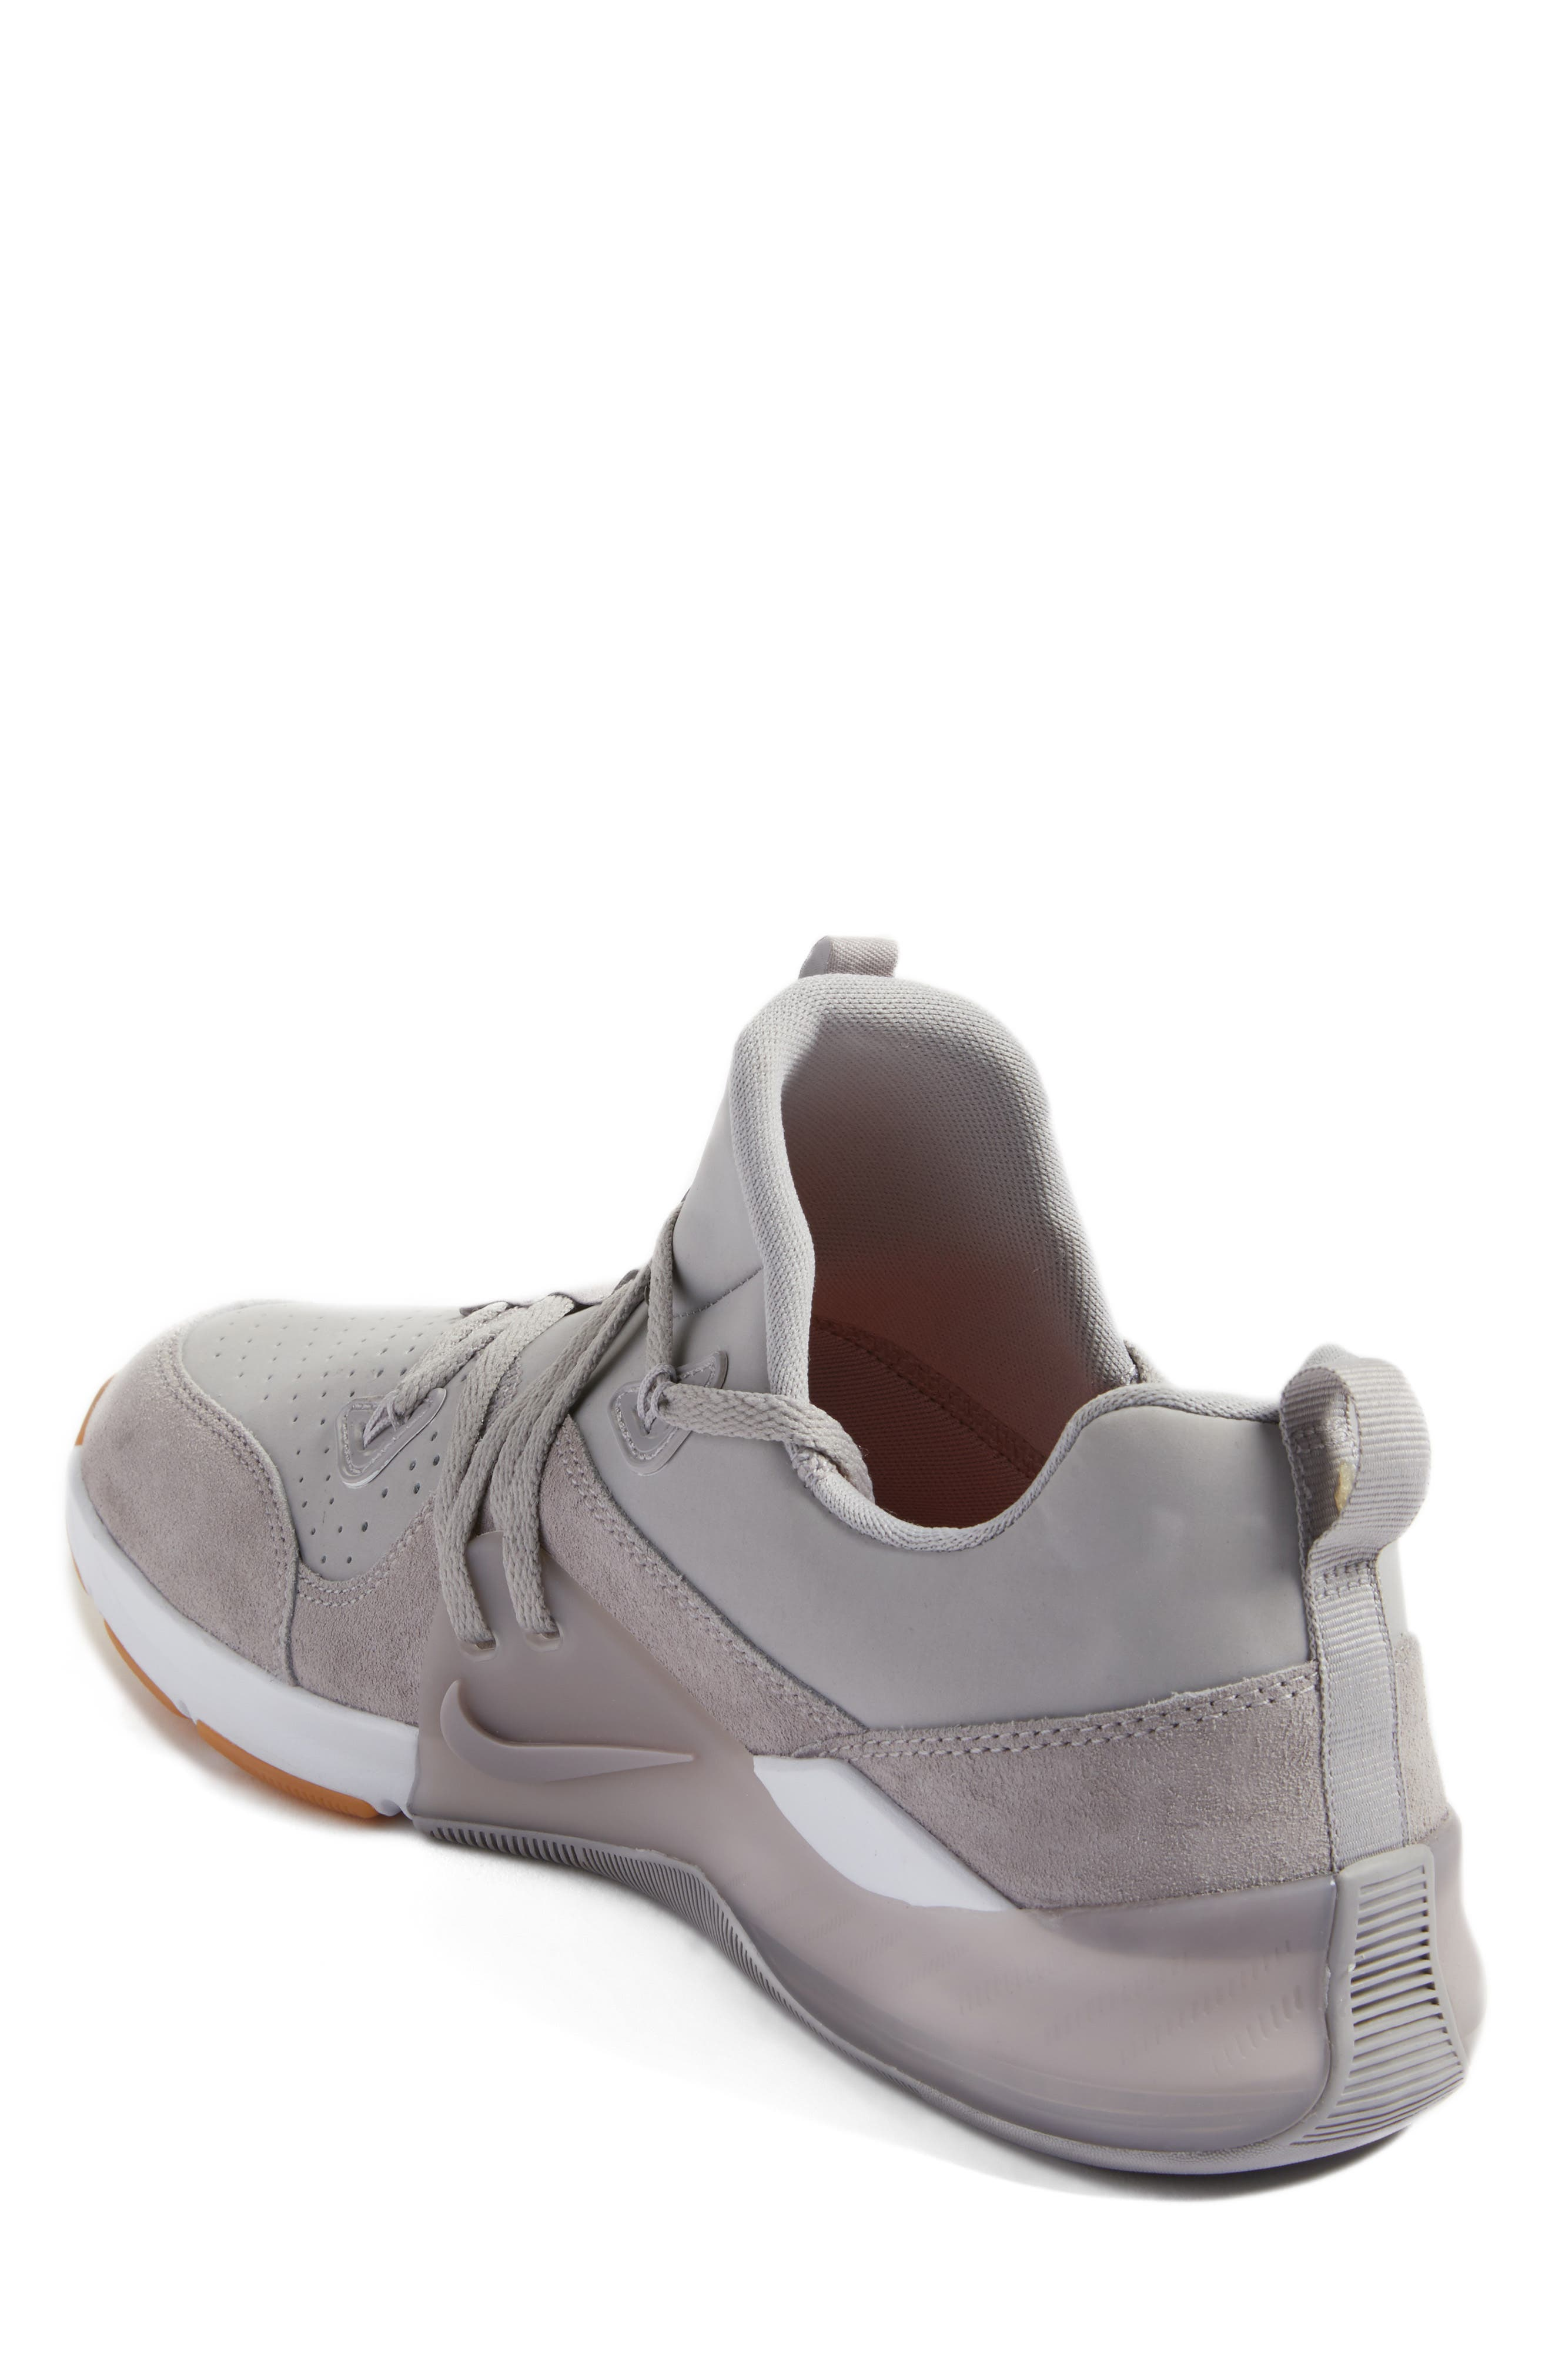 Zoom Train Command Training Shoe,                             Alternate thumbnail 2, color,                             Atmosphere Grey/ White/ Brown